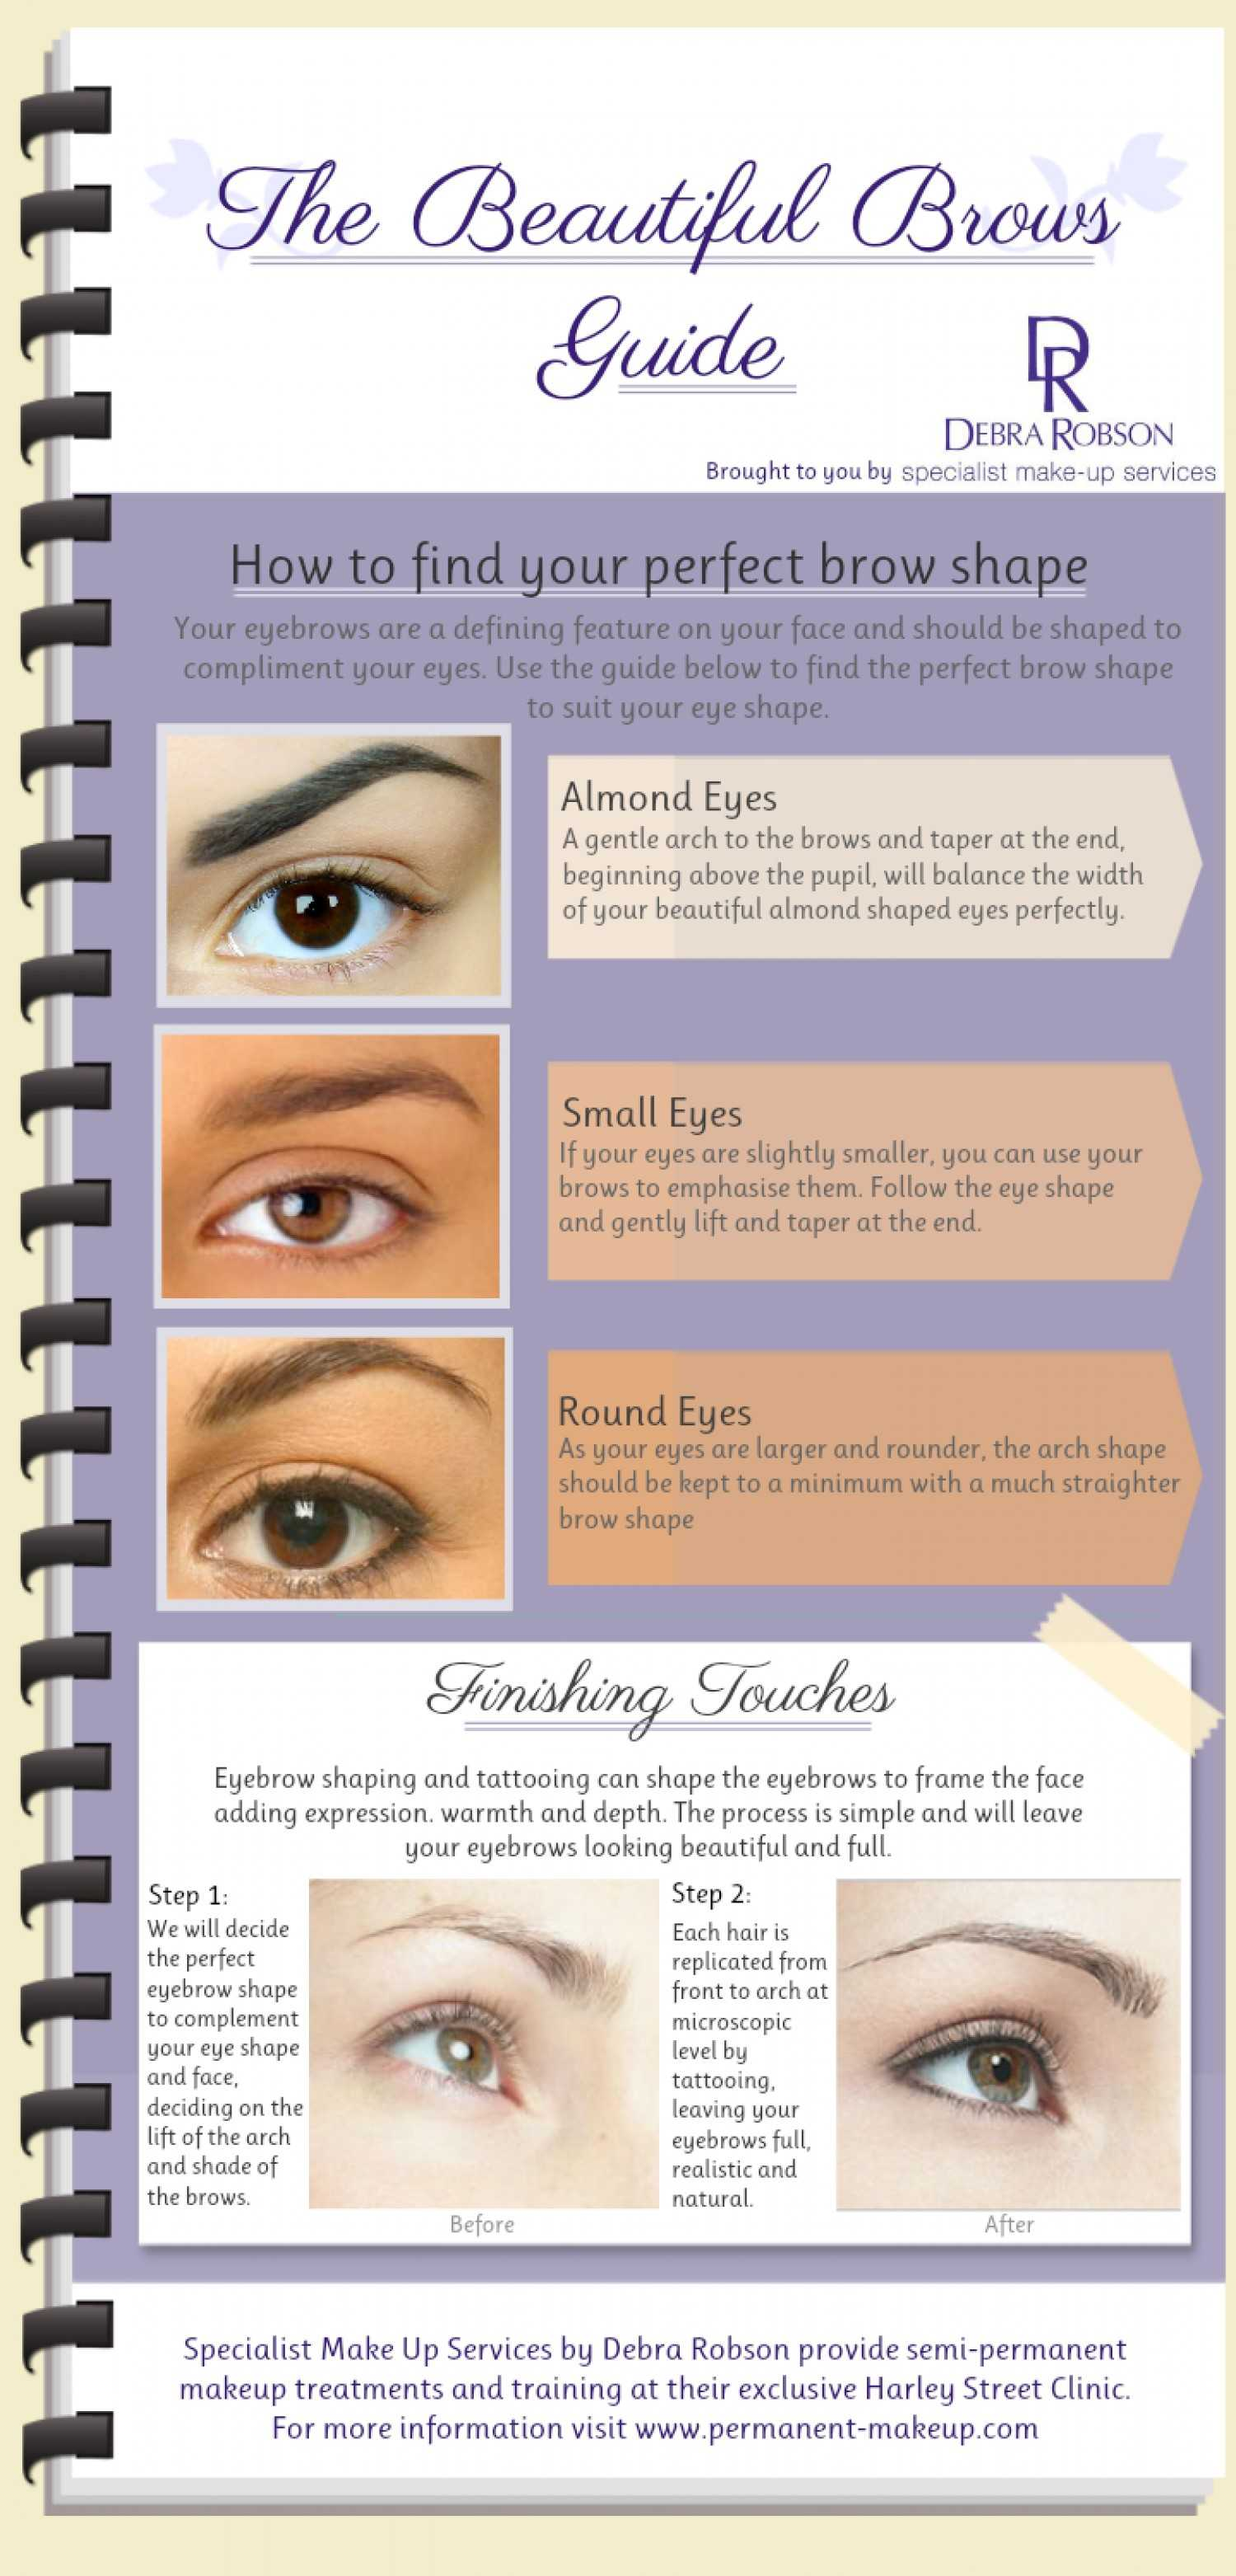 The Beautiful Eyebrows Guide